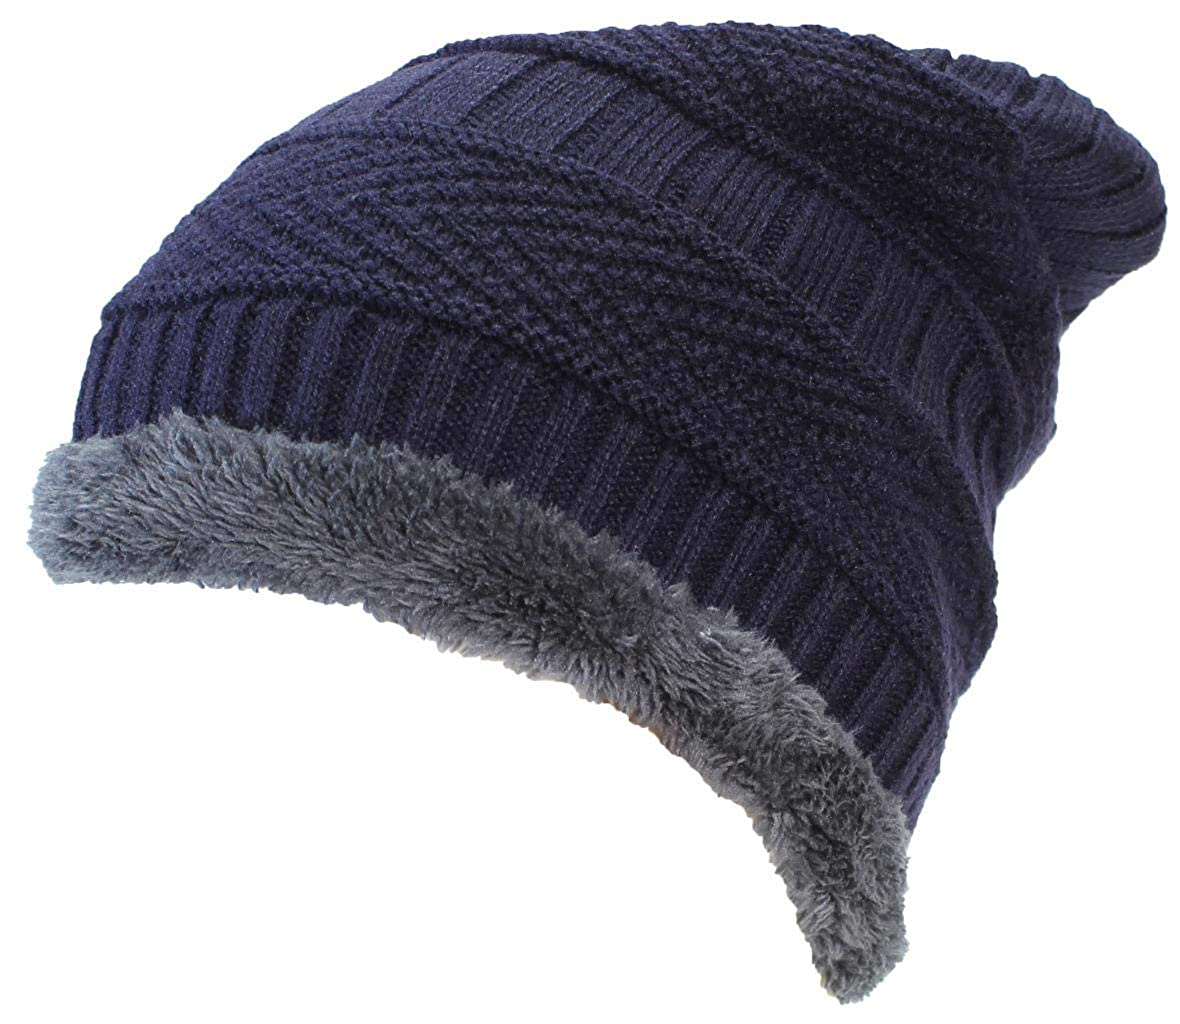 8a1d7327 Amazon.com: Best Winter Hats Adult Insulated Stockinette Knit Beanie ...